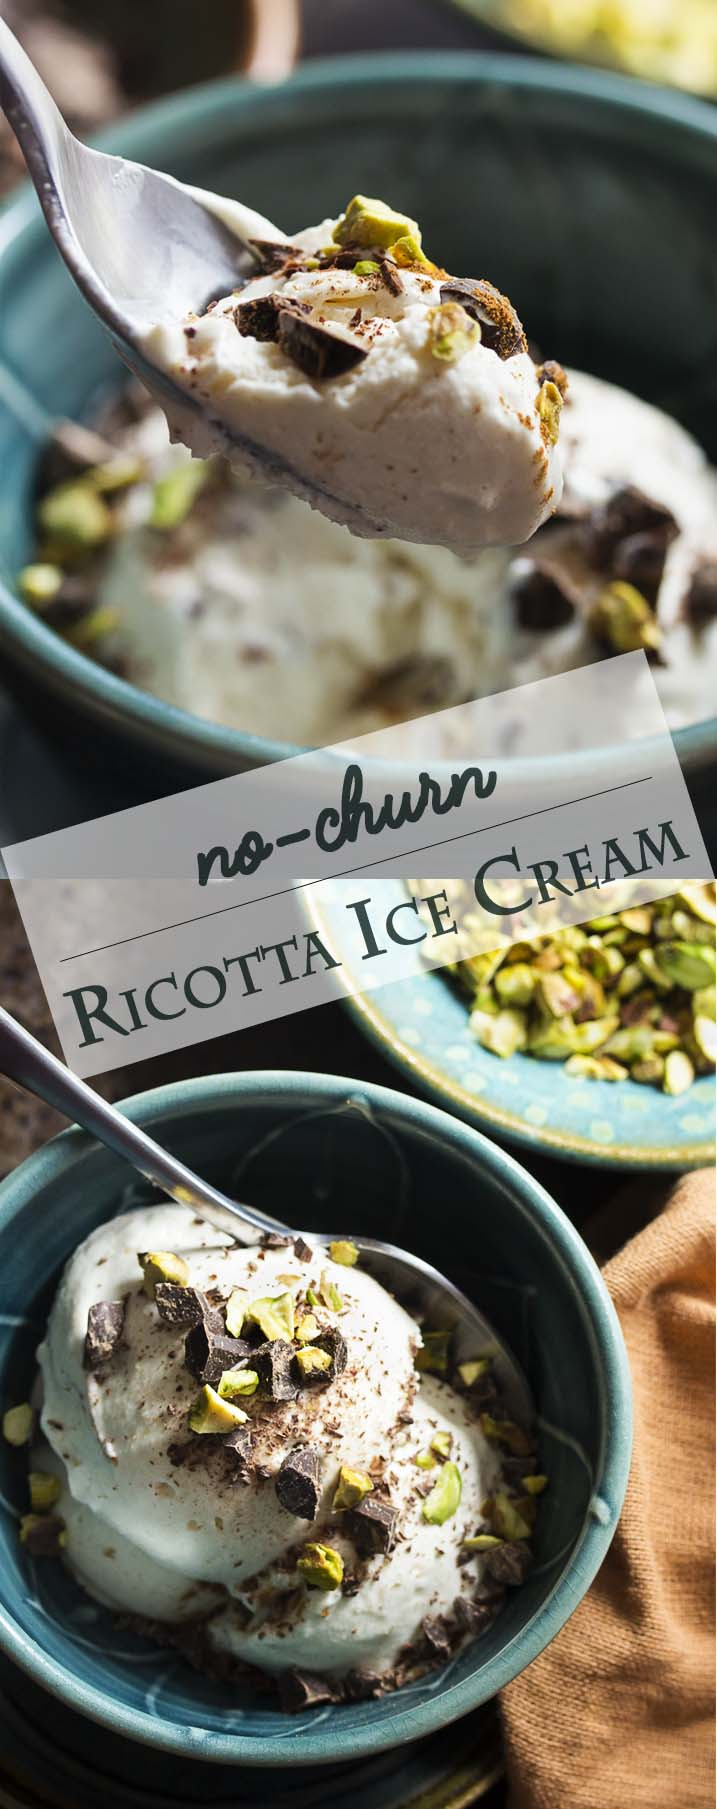 No ice cream machine? Try no churn ricotta ice cream! It's spiced with cinnamon and topped with toasted pistachios and chopped chocolate. Cannoli filling in frozen form which you can make in minutes. | justalittlebitofbacon.com